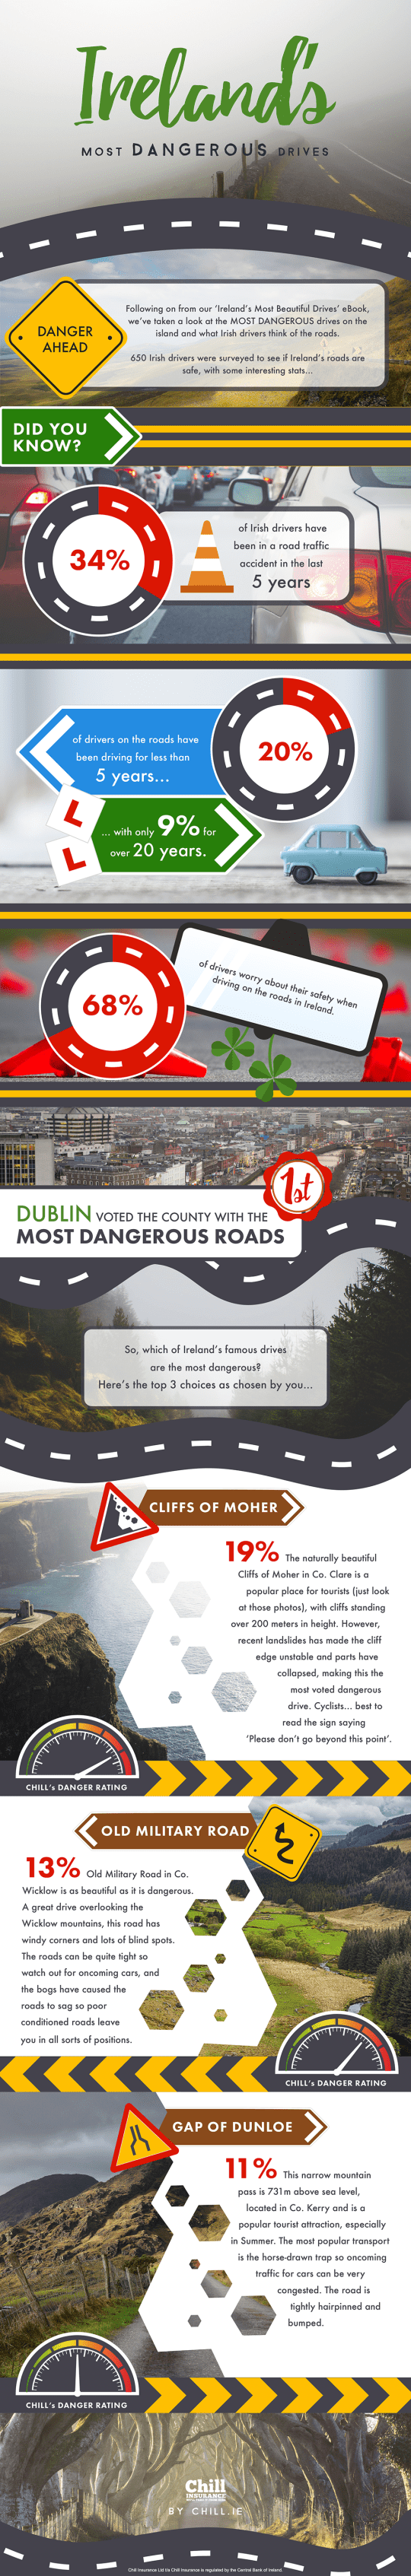 dangerous drives infographic